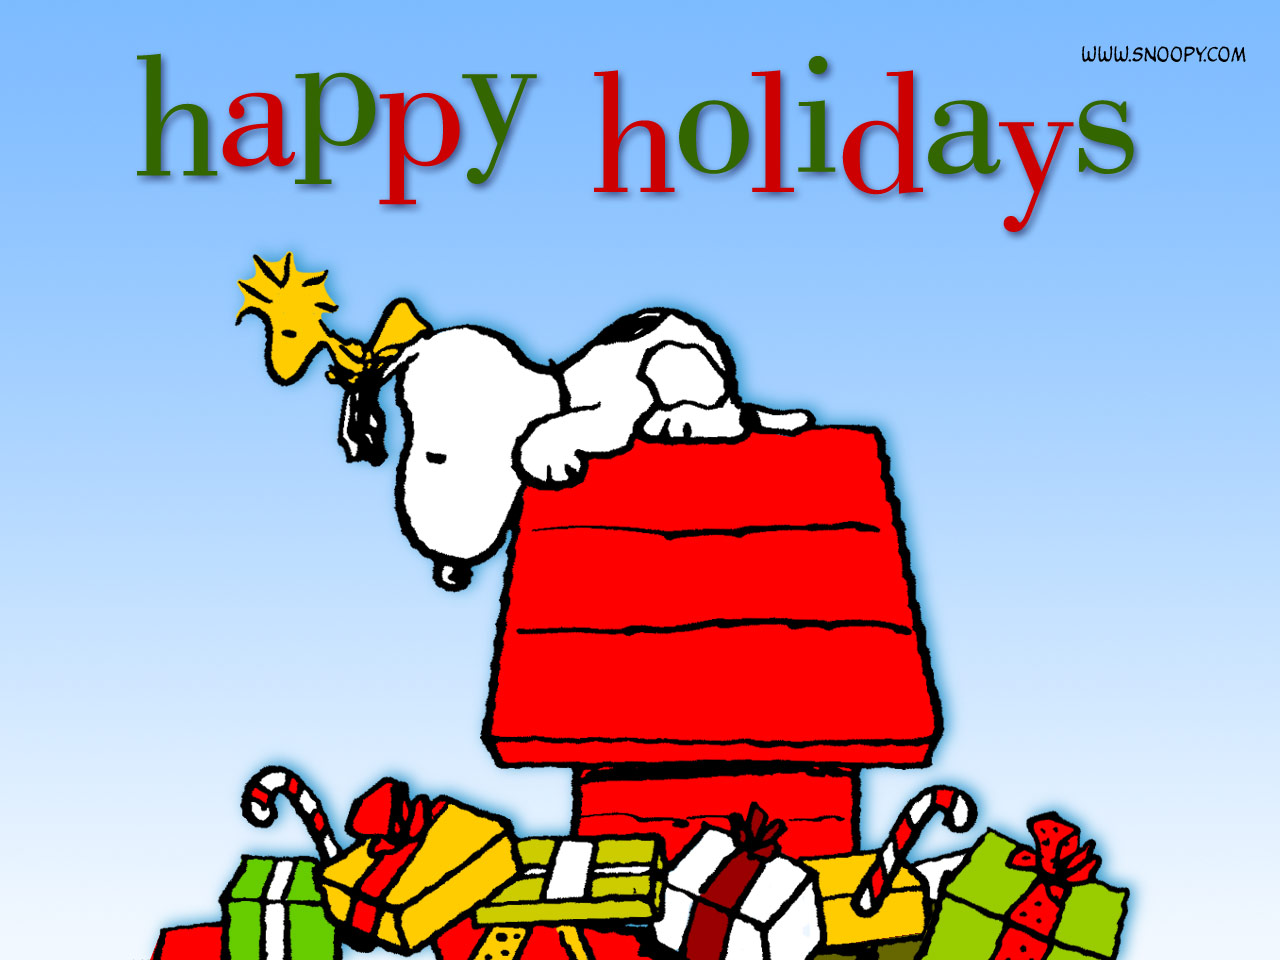 Snoopy Charlie Brown Christmas Wallpaper